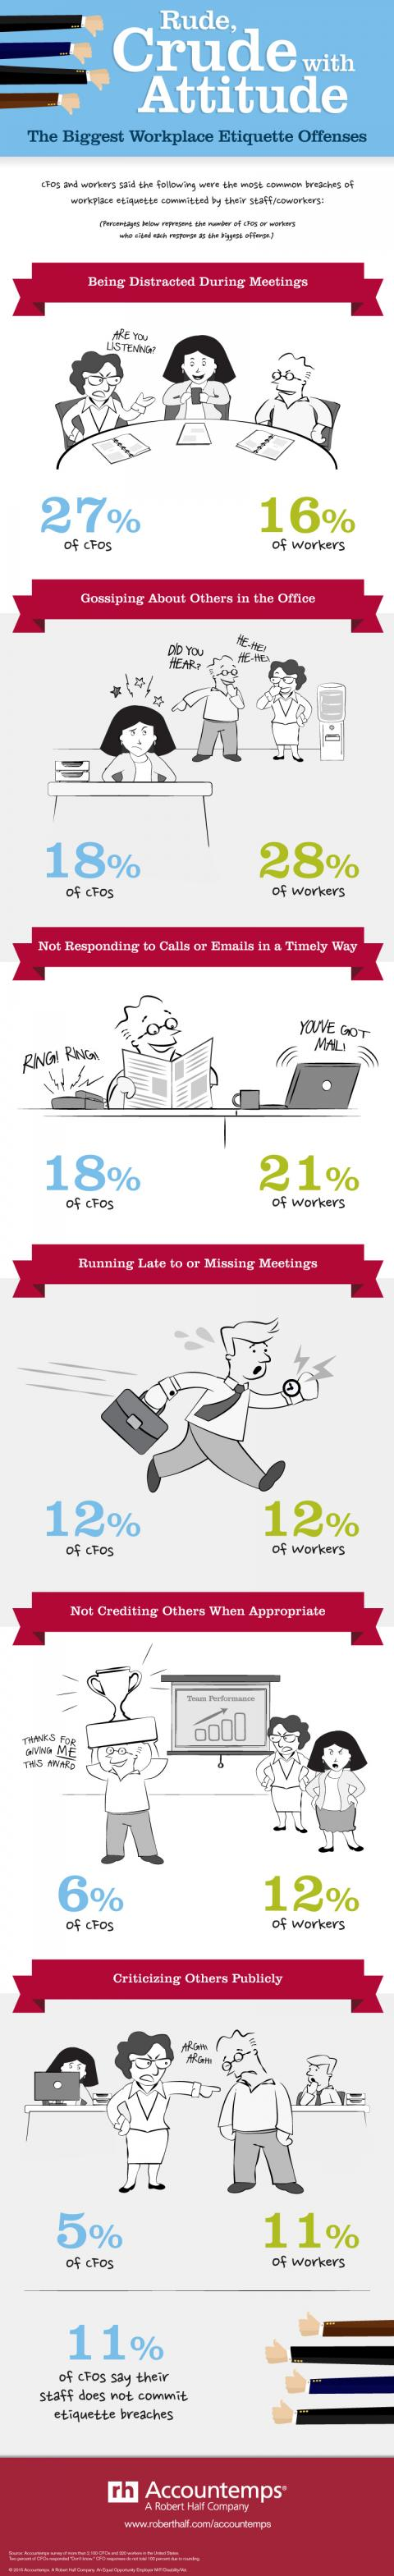 An infographic featuring results of an Accountemps survey on etiquette offenses in the workplace